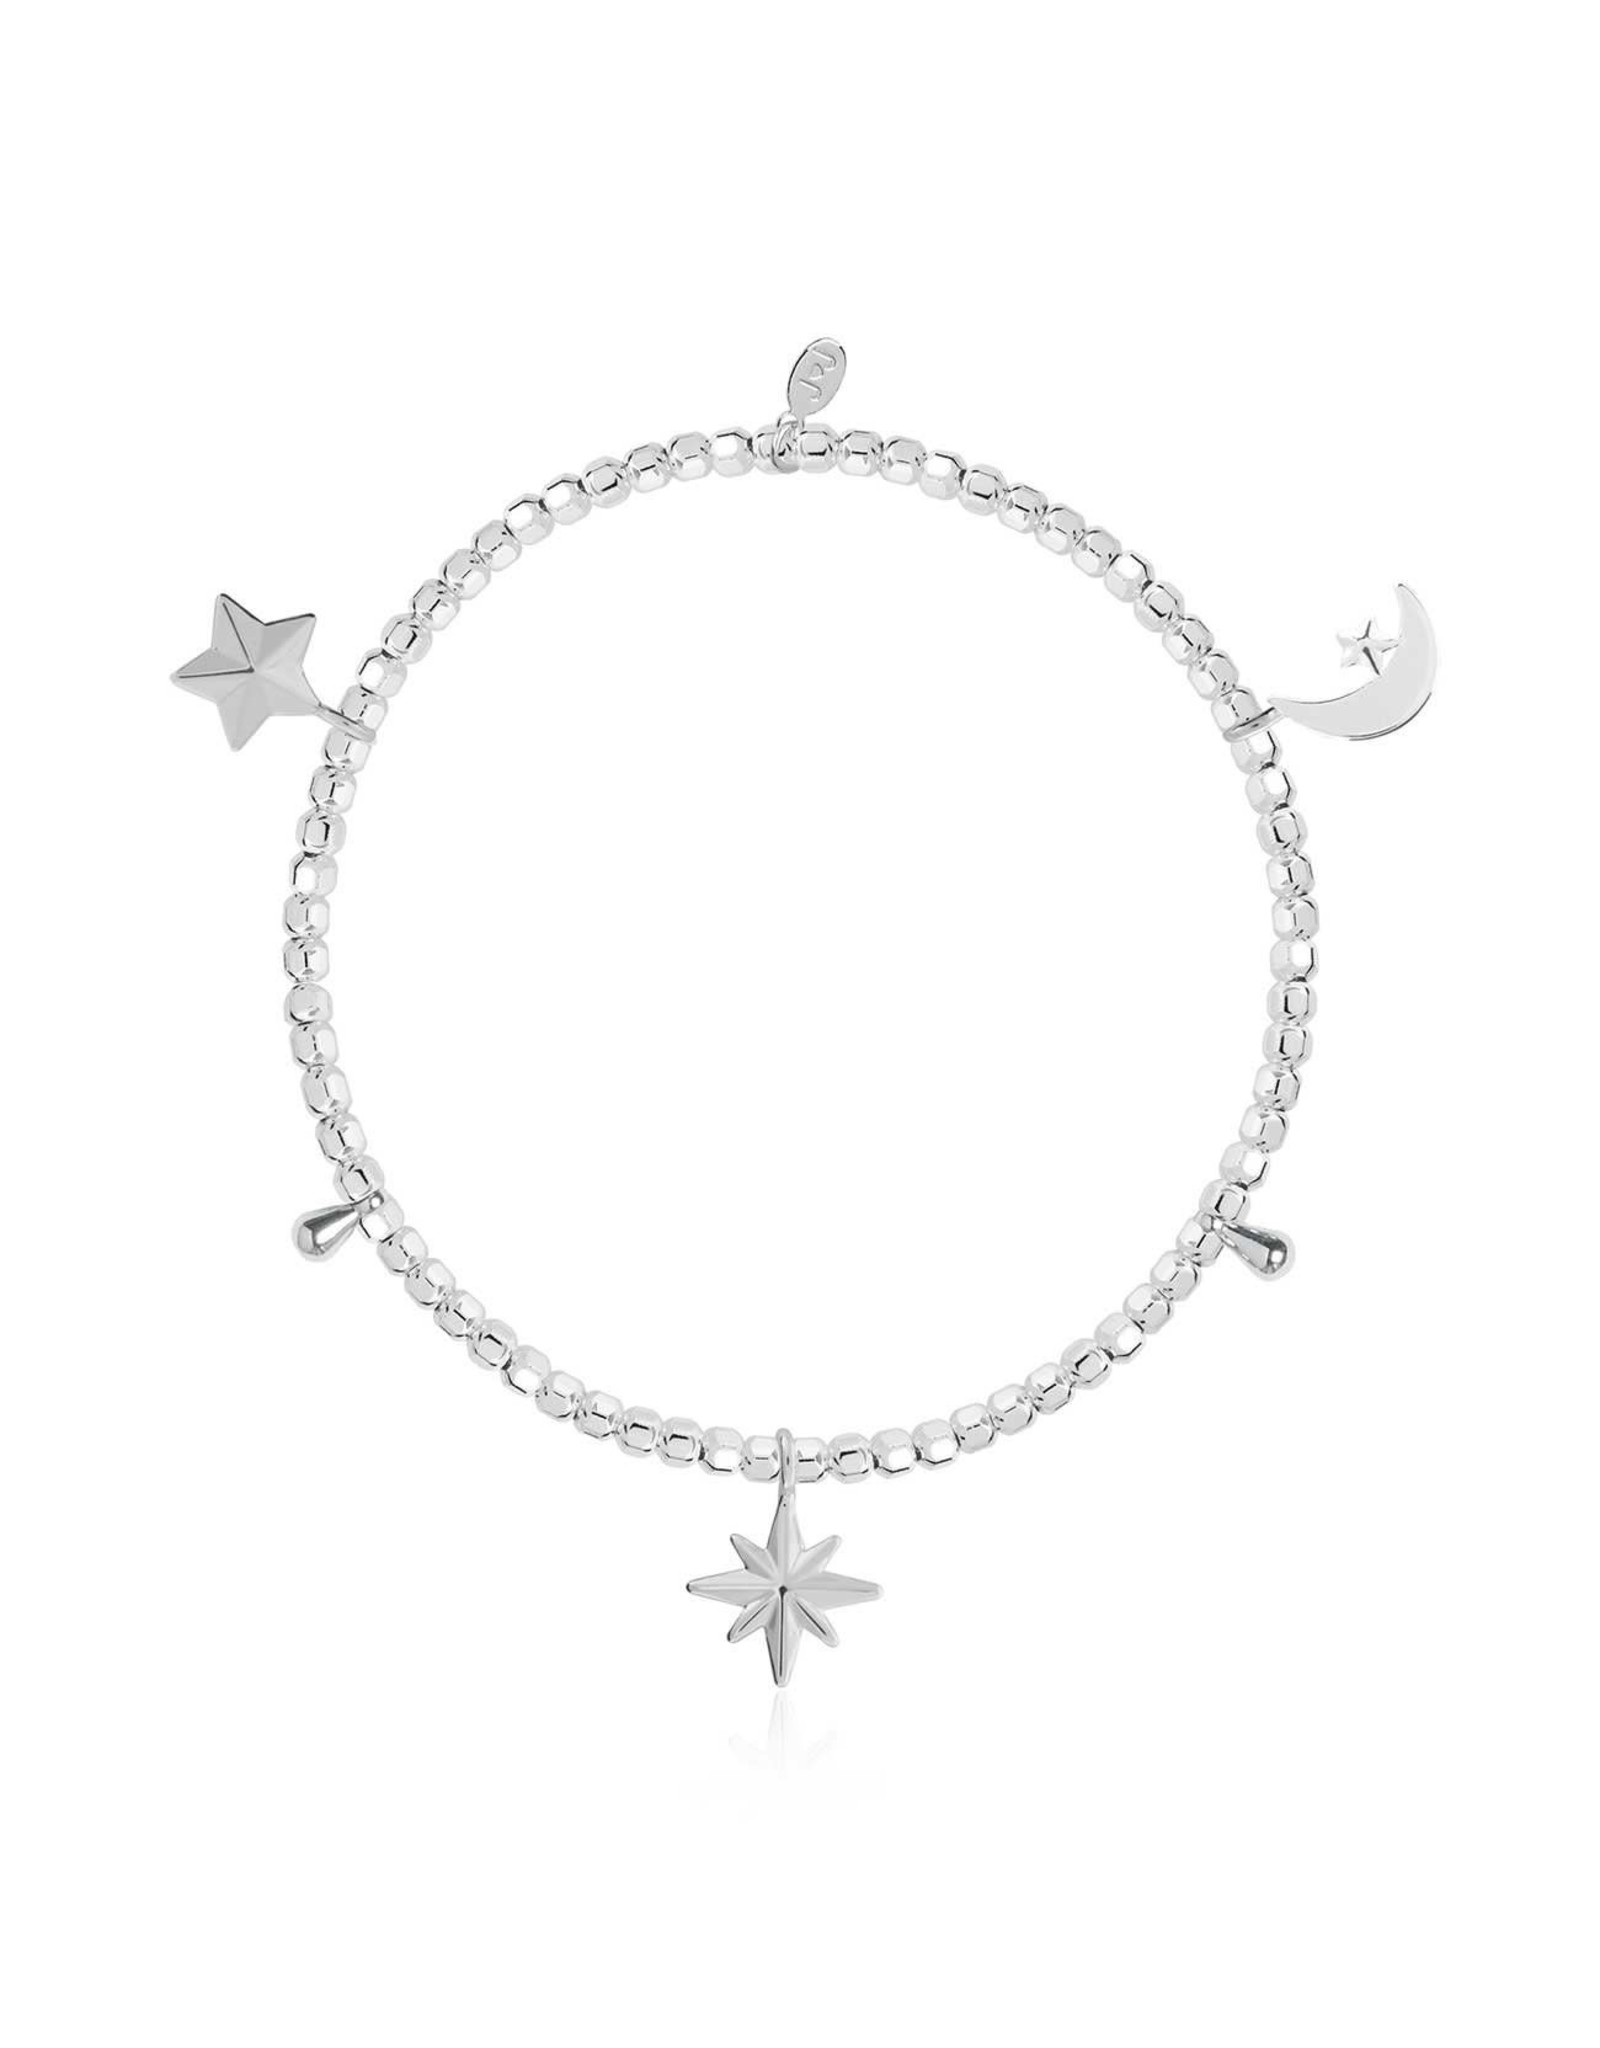 Joma Jewellery Life's a Charm - Magical Moments